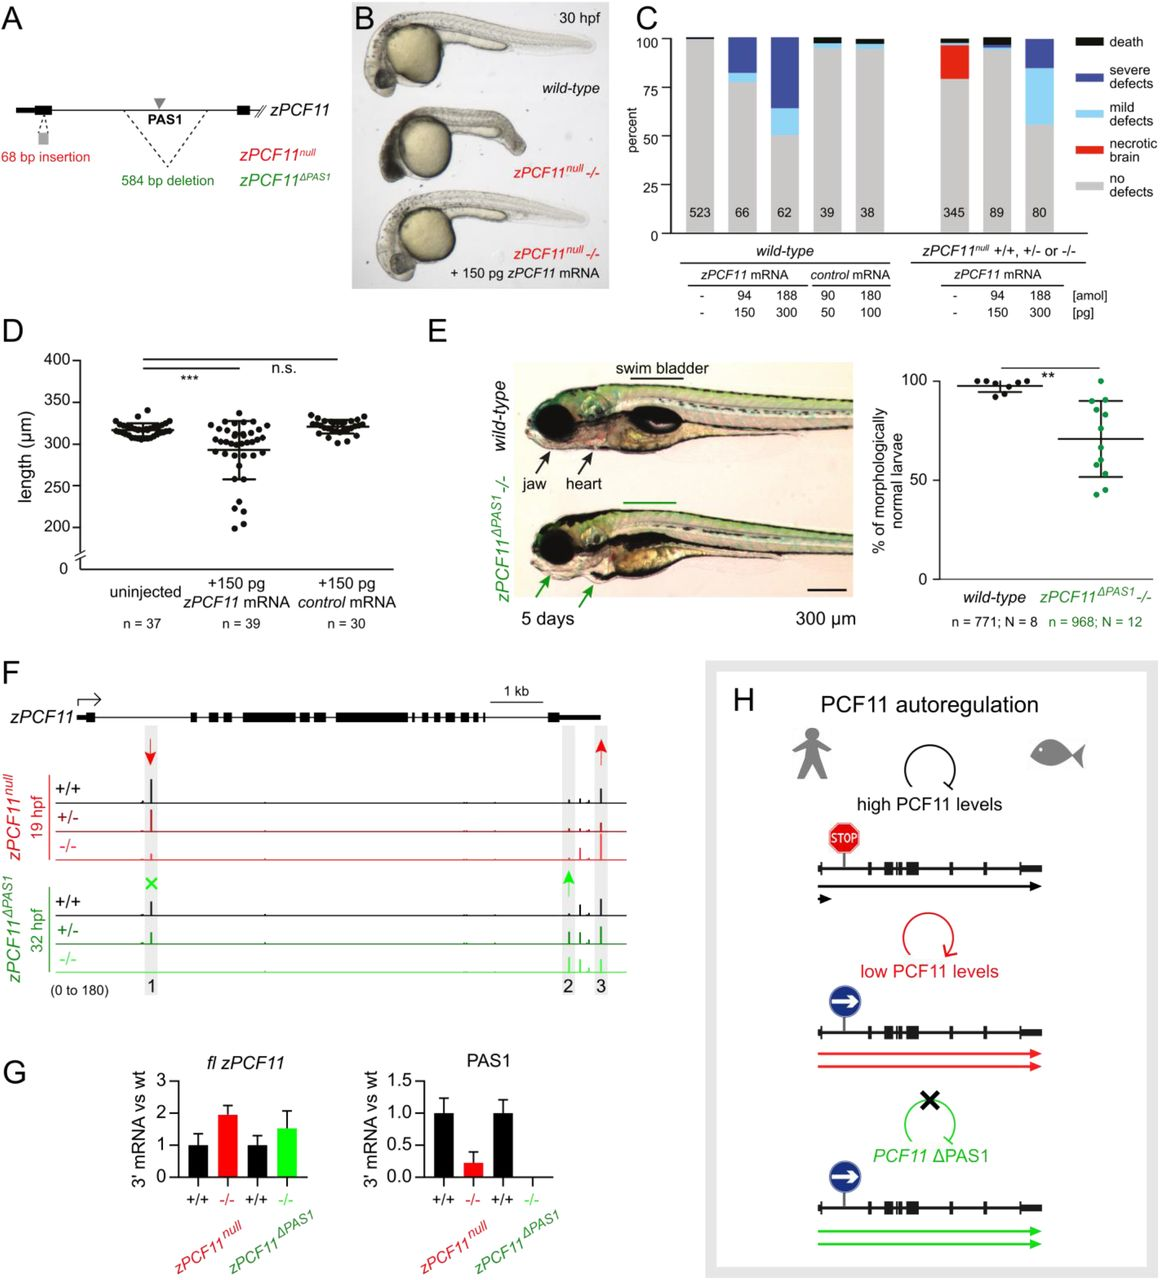 Selective roles of vertebrate PCF11 in premature and full-length